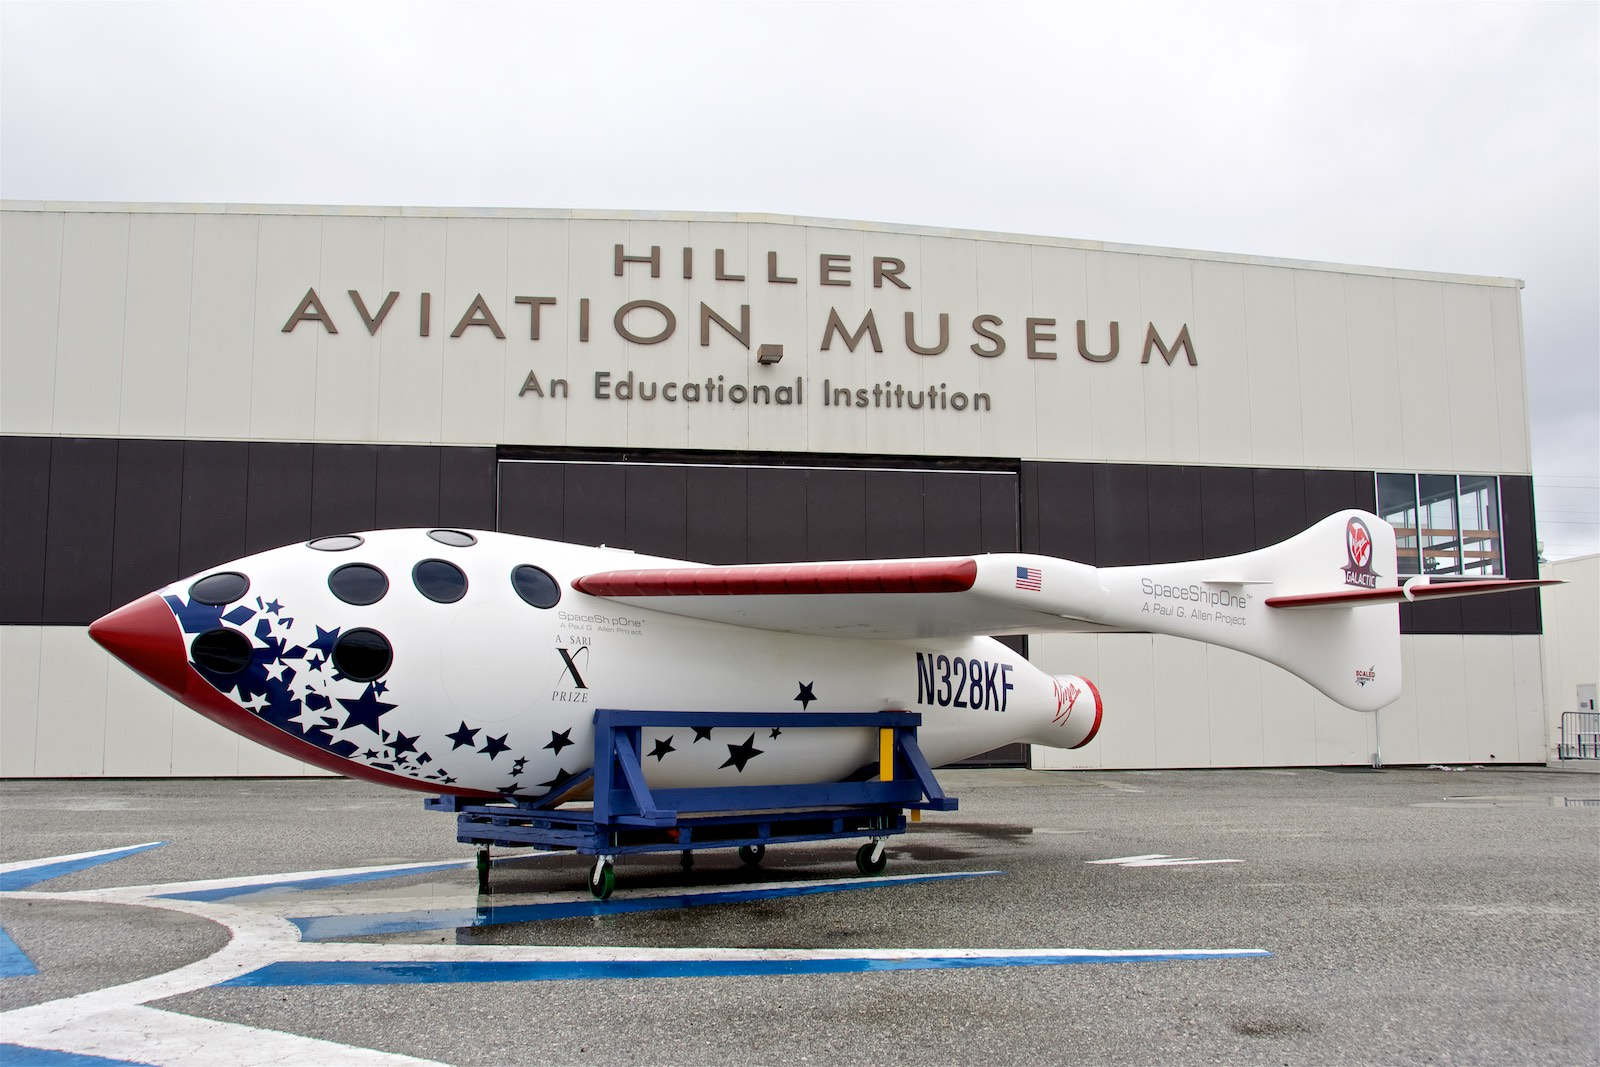 Hiller Football Fest,   SpaceShipOne replica,